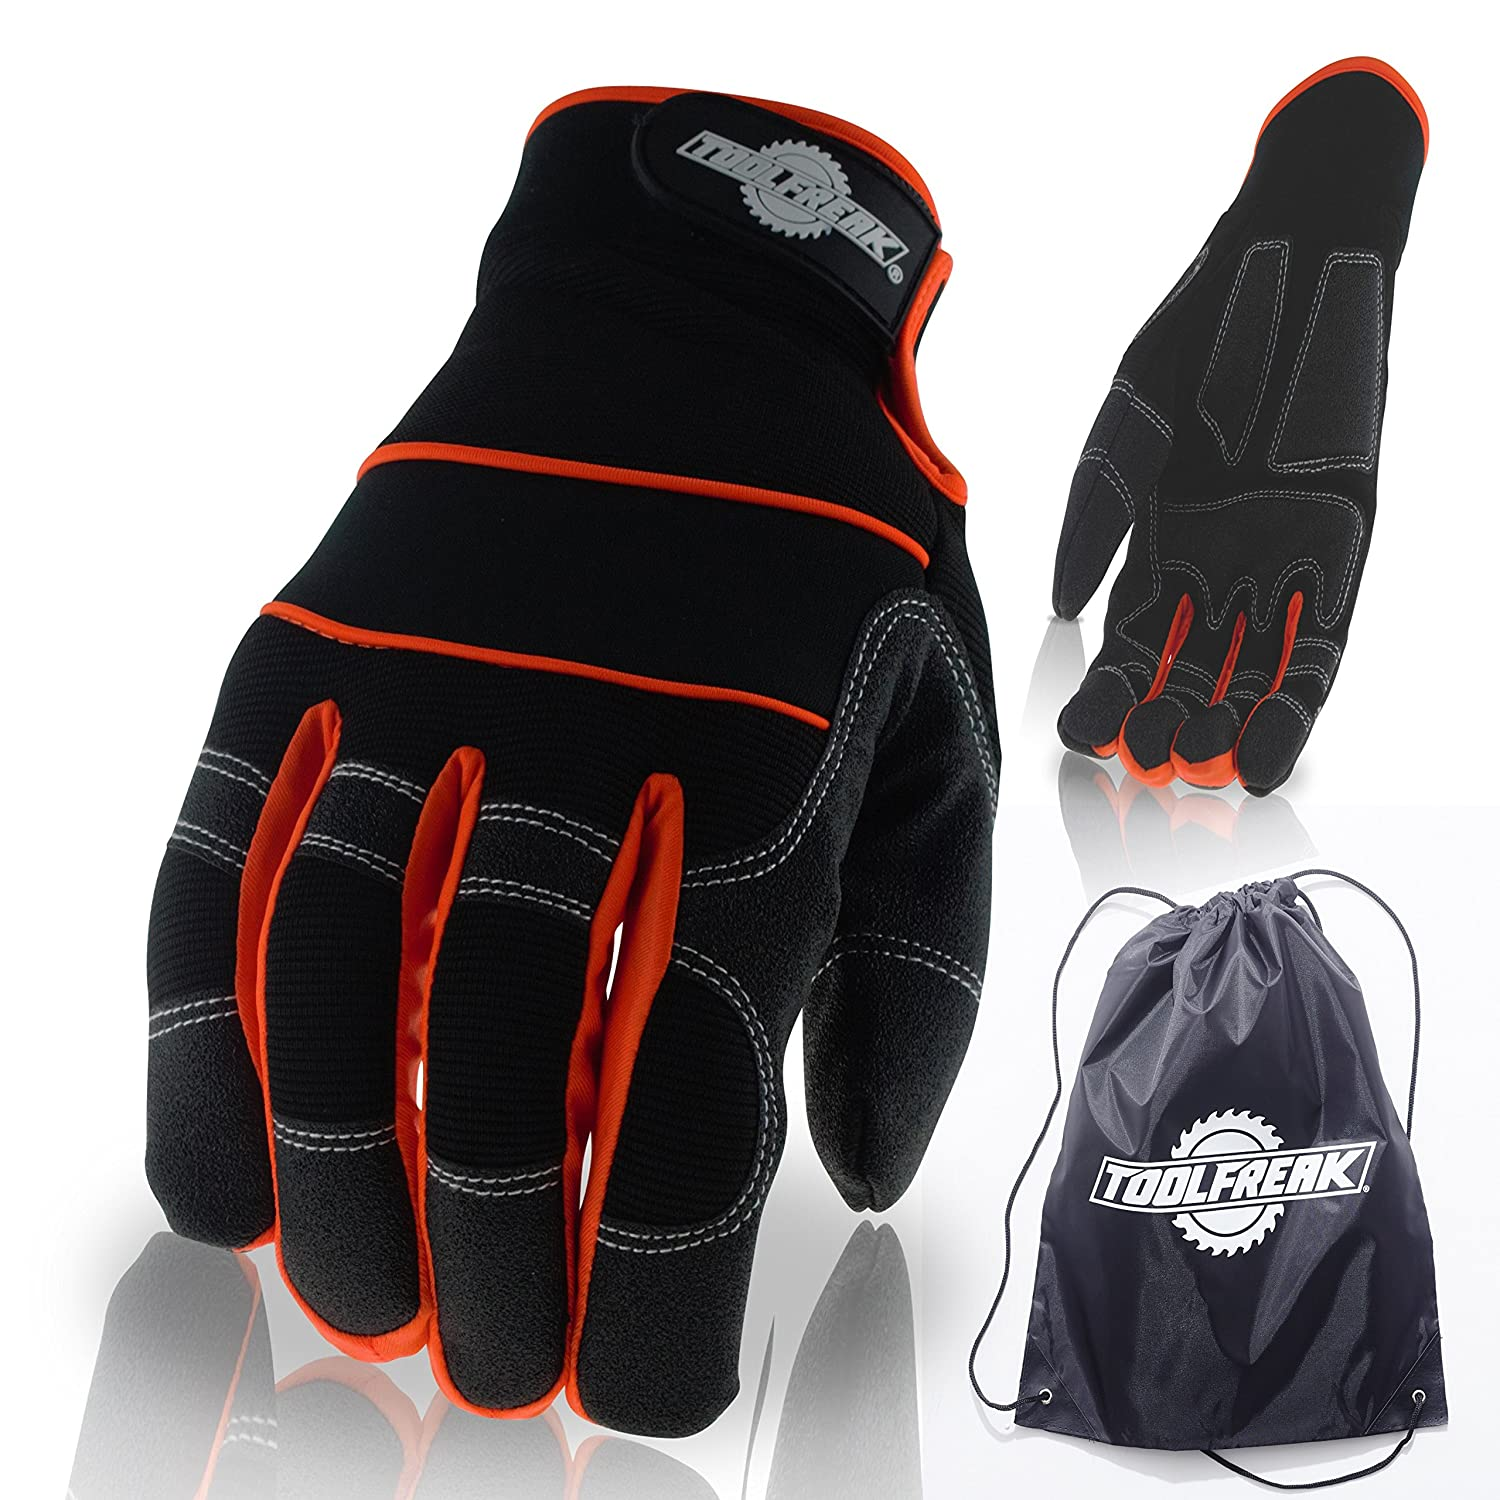 ToolFreak Safety Work Gloves Cosy Anti Slip Grip Padded Palms to Better Absorb Vibration Thermal Lined Palms and Backs Size 8 Medium